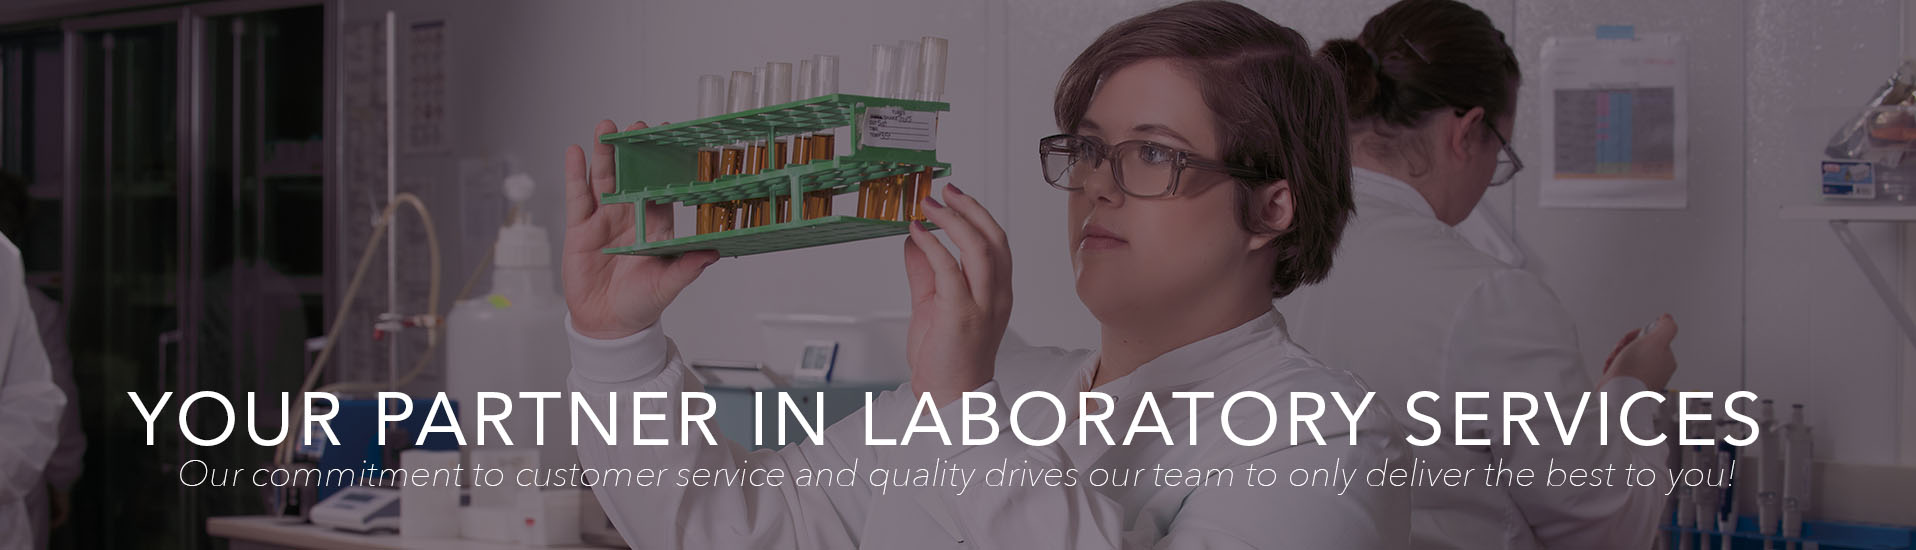 Laboratory Partner Header